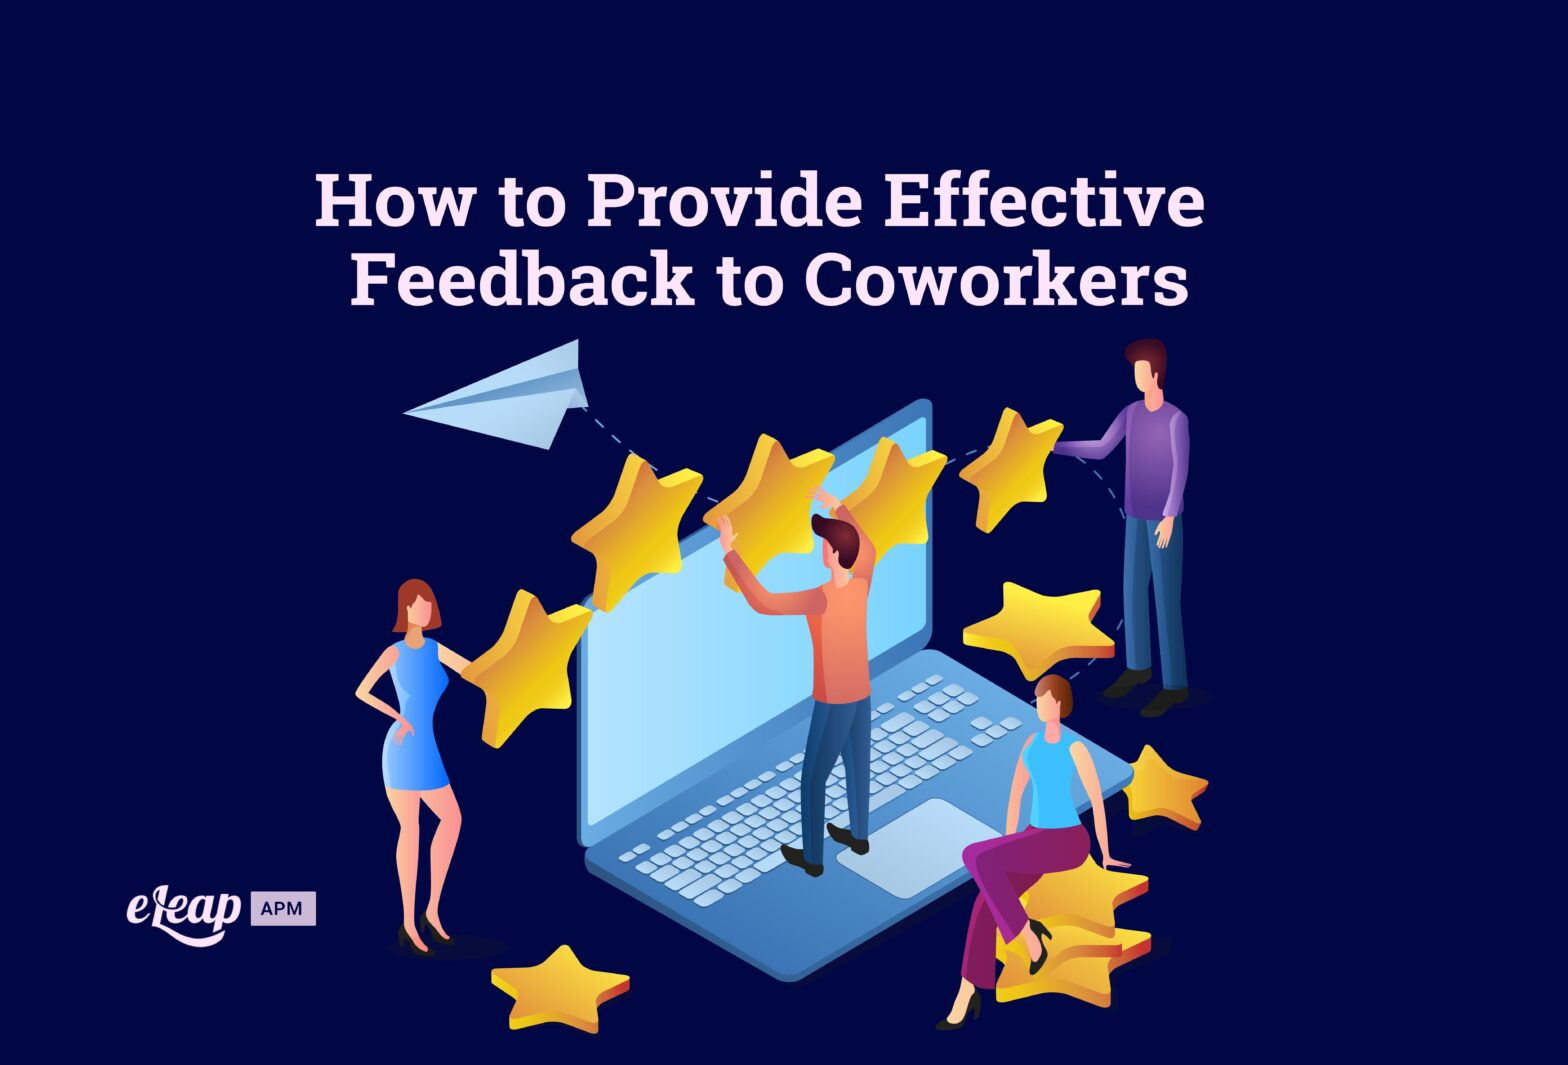 How to Provide Effective Feedback to Coworkers